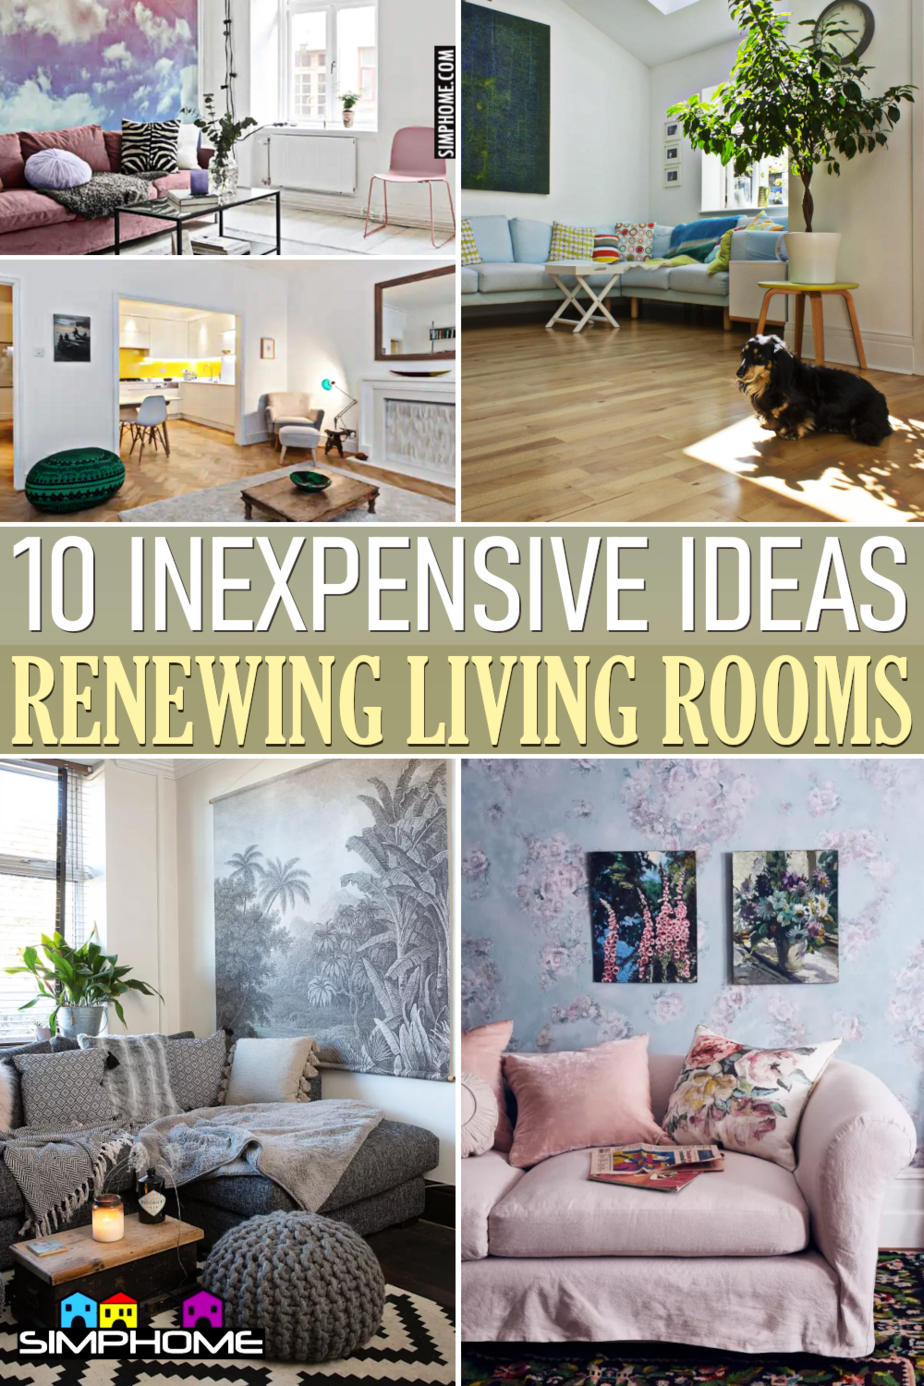 10 Inexpensive Ways to Renew Your Living Room via Simphome.comFeatured